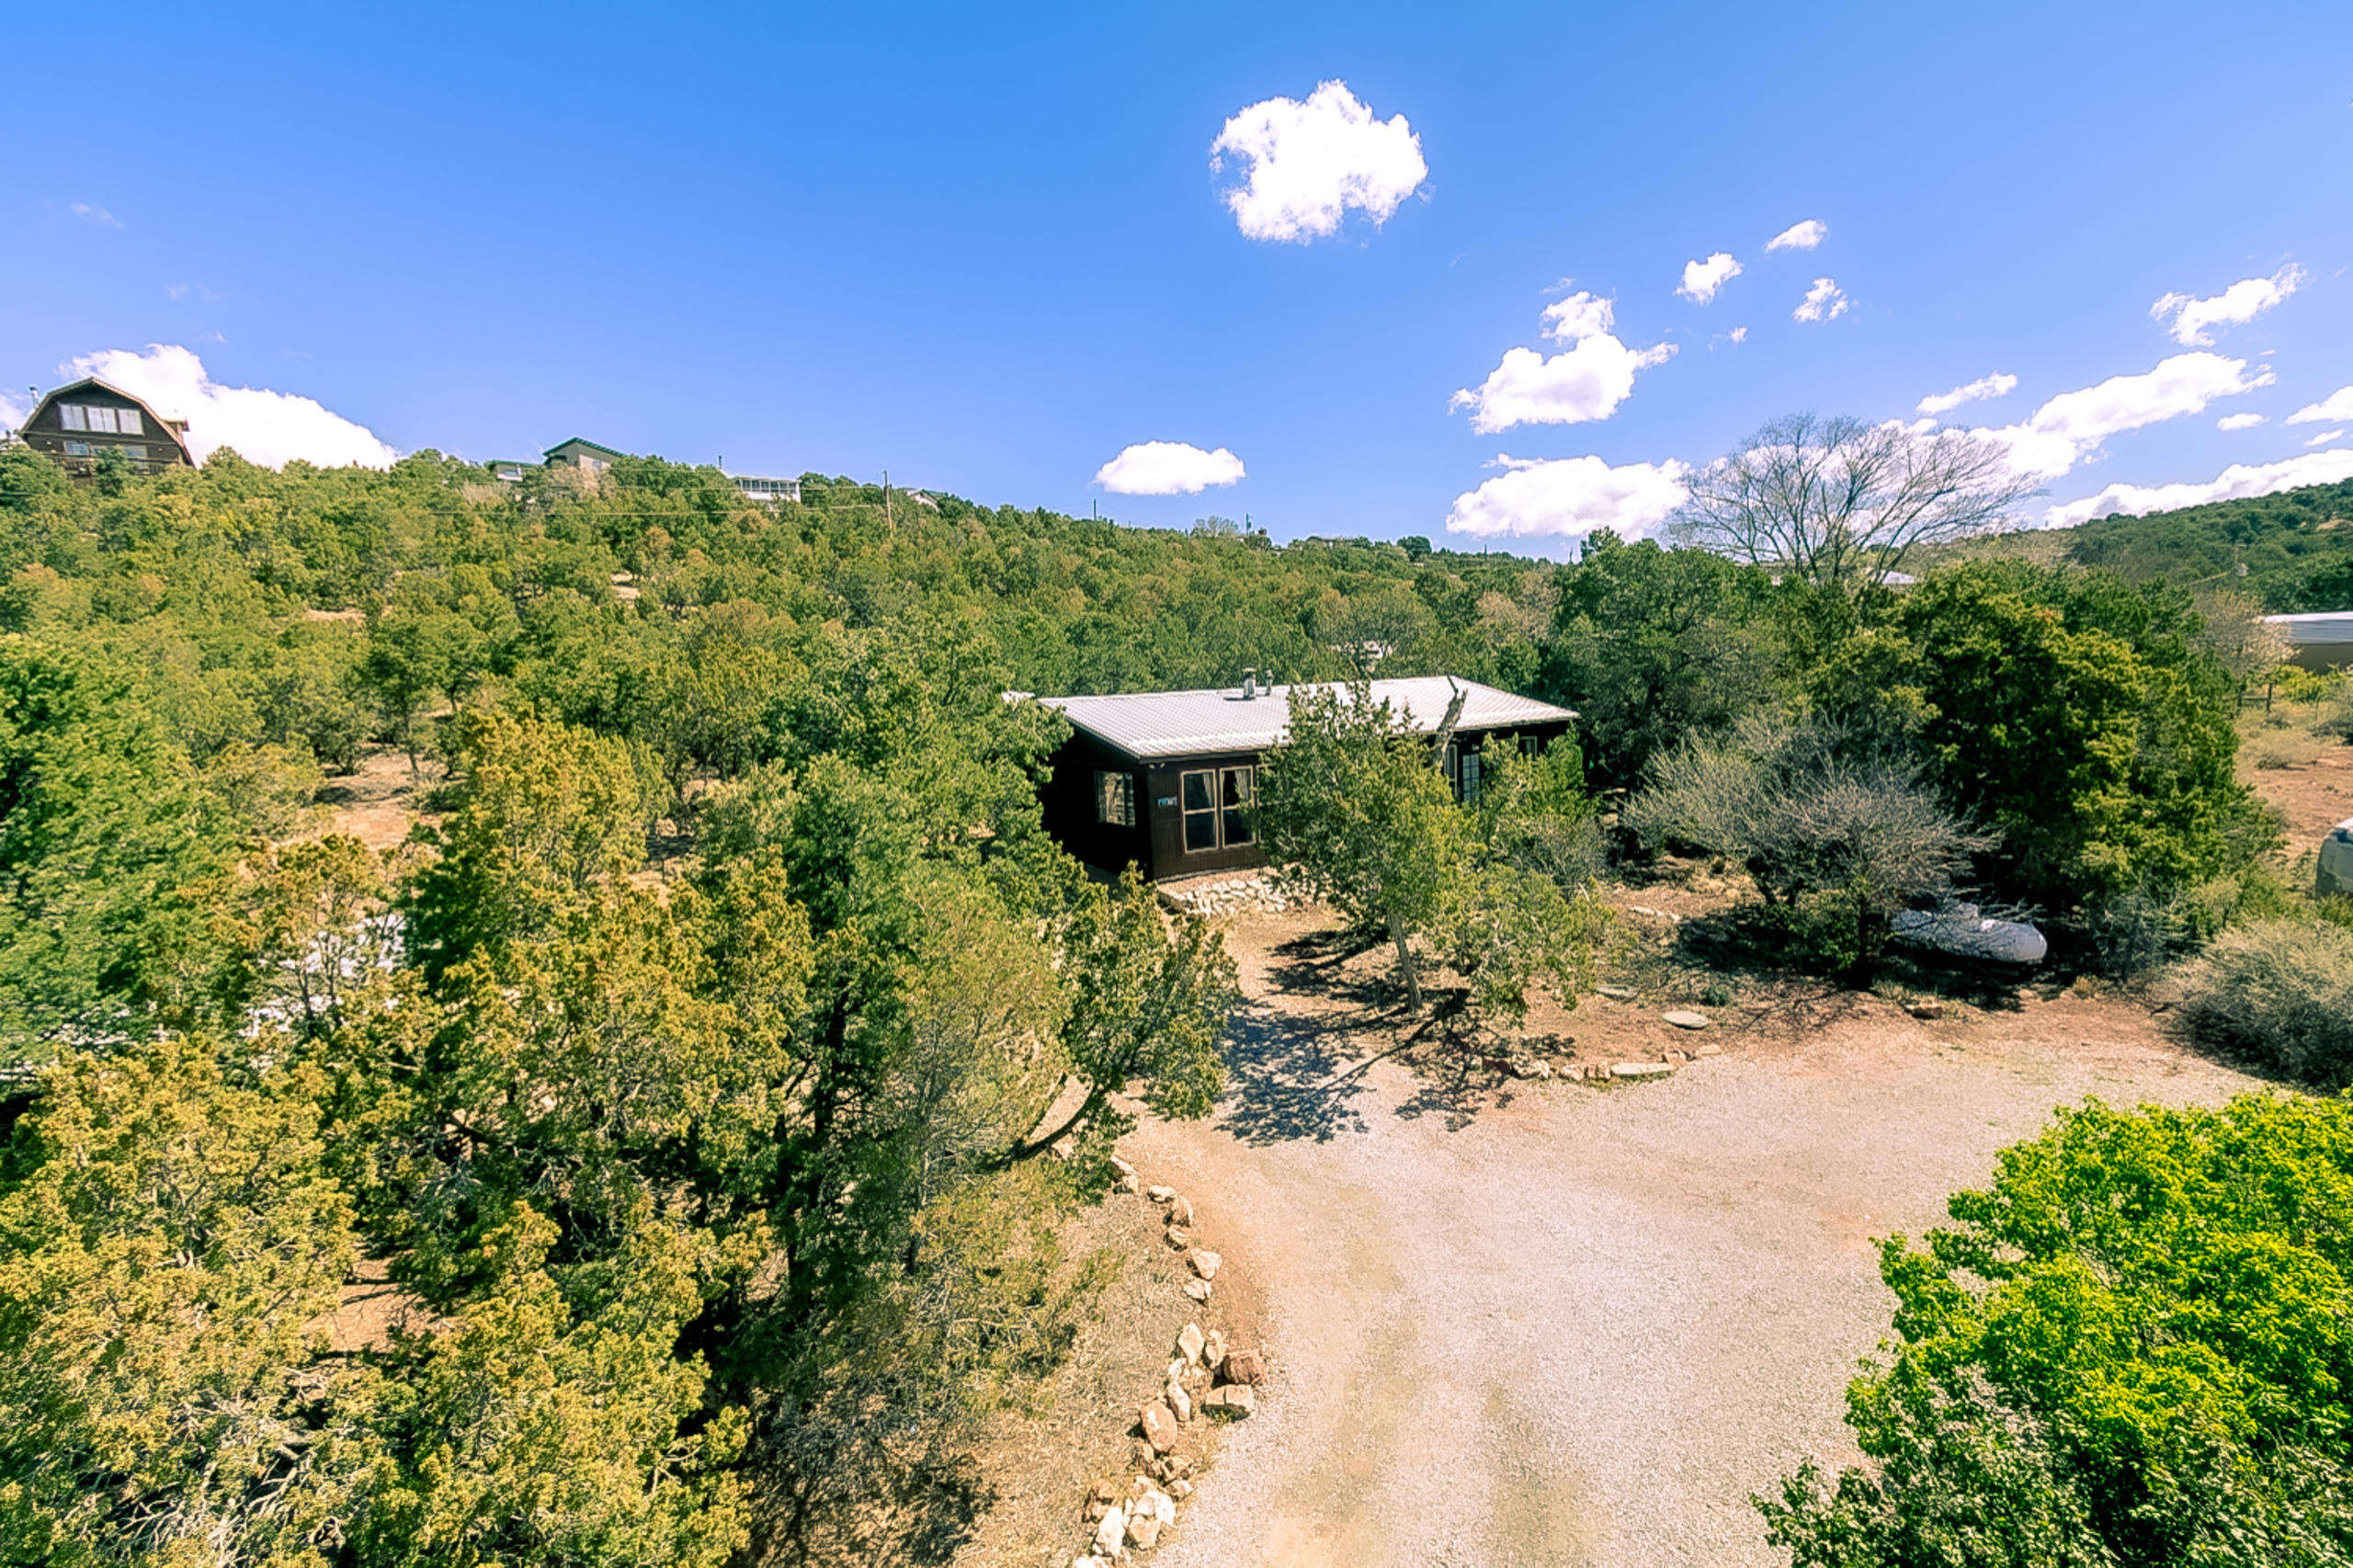 This mountain retreat home located in Sandia Knolls is surrounded by mature pinion & juniper trees. Open floor plan offers lots of options for decorating. Living area features tongue & groove accent wall, built in bookshelves & wood stove. Beautiful oak cabinetry in kitchen w/ tile back splash & laminate flooring. Owner's suite includes walk in shower w/custom tile surround.,new marble vanity top, sink, & faucet Large walk in closet plus French door out to wooden deck. 18'' of extra blown in insulation in attic. Thermal pain windows w/some updated to vinyl on south side of home. Metal roof. Flagstone patio area is great for relaxing & taking in the serenity. Separate dog run. 16'x8' storage building plus 22'x10' workshop/storage w/ electricity. This home has it all & 17 mi to Albuquerque.